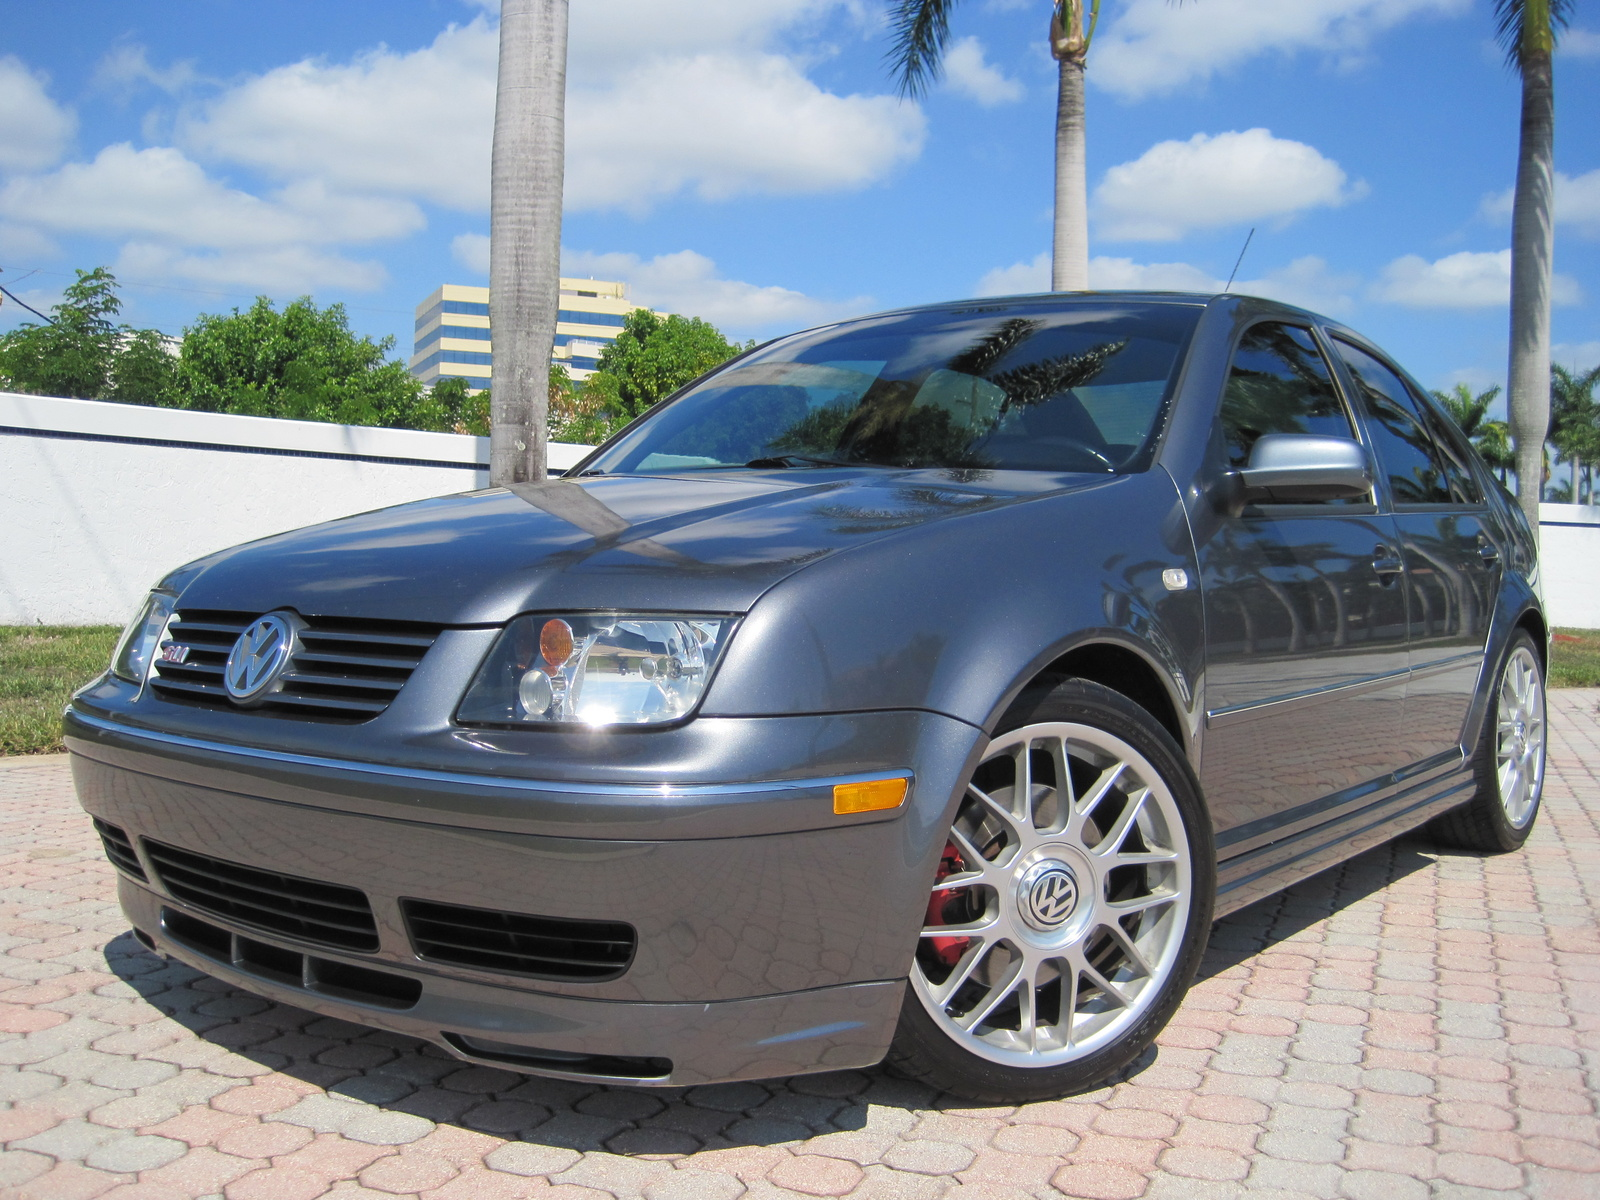 2007 volkswagen jetta overview new and used car listings car html autos weblog. Black Bedroom Furniture Sets. Home Design Ideas